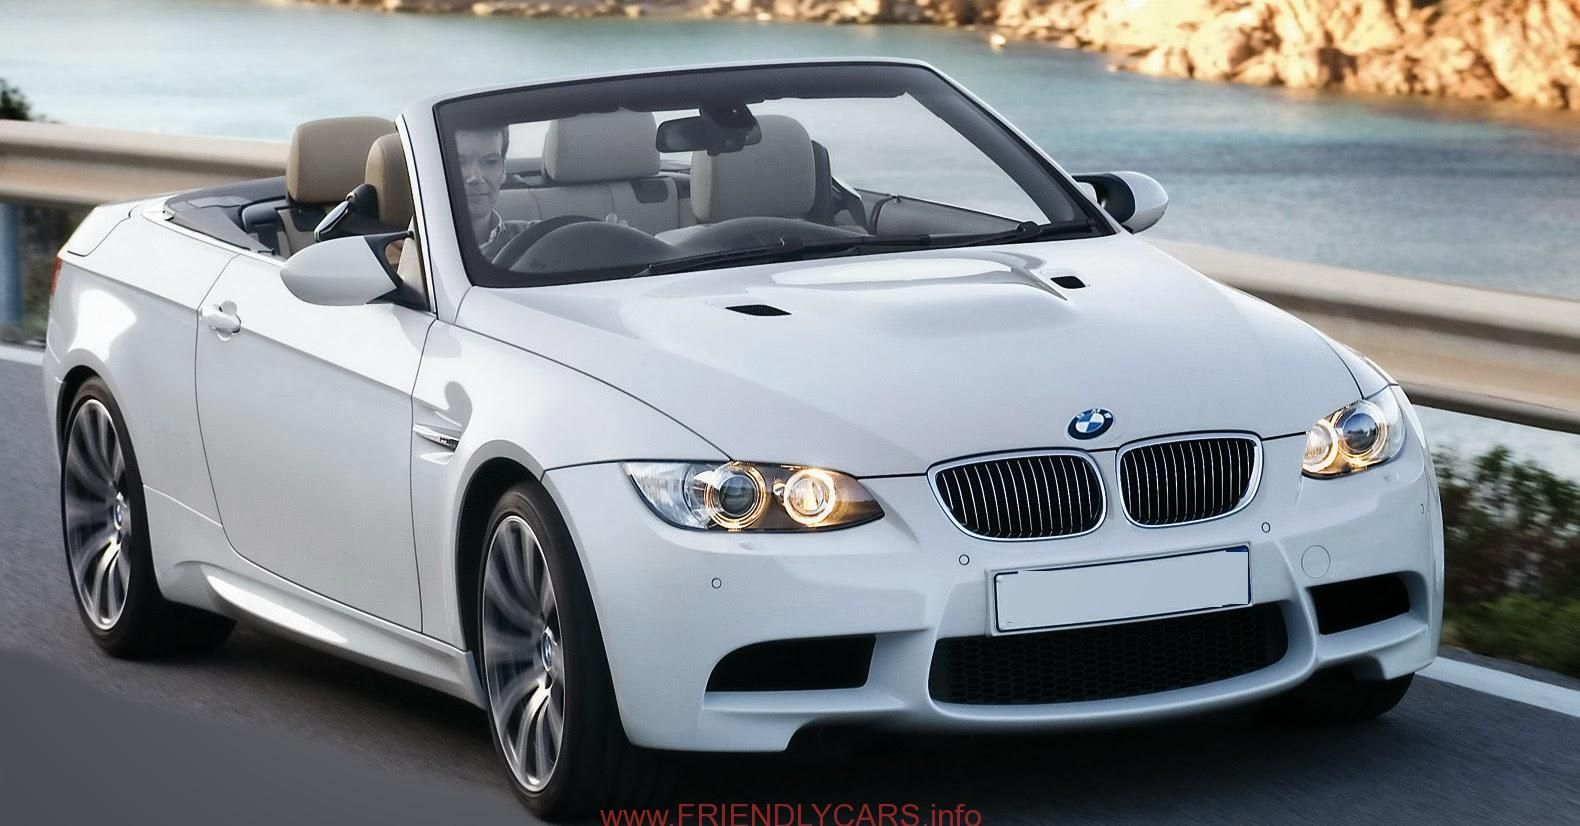 Nice Bmw 3 Series 2014 Convertible Car Images Hd Bmw X5 Cars